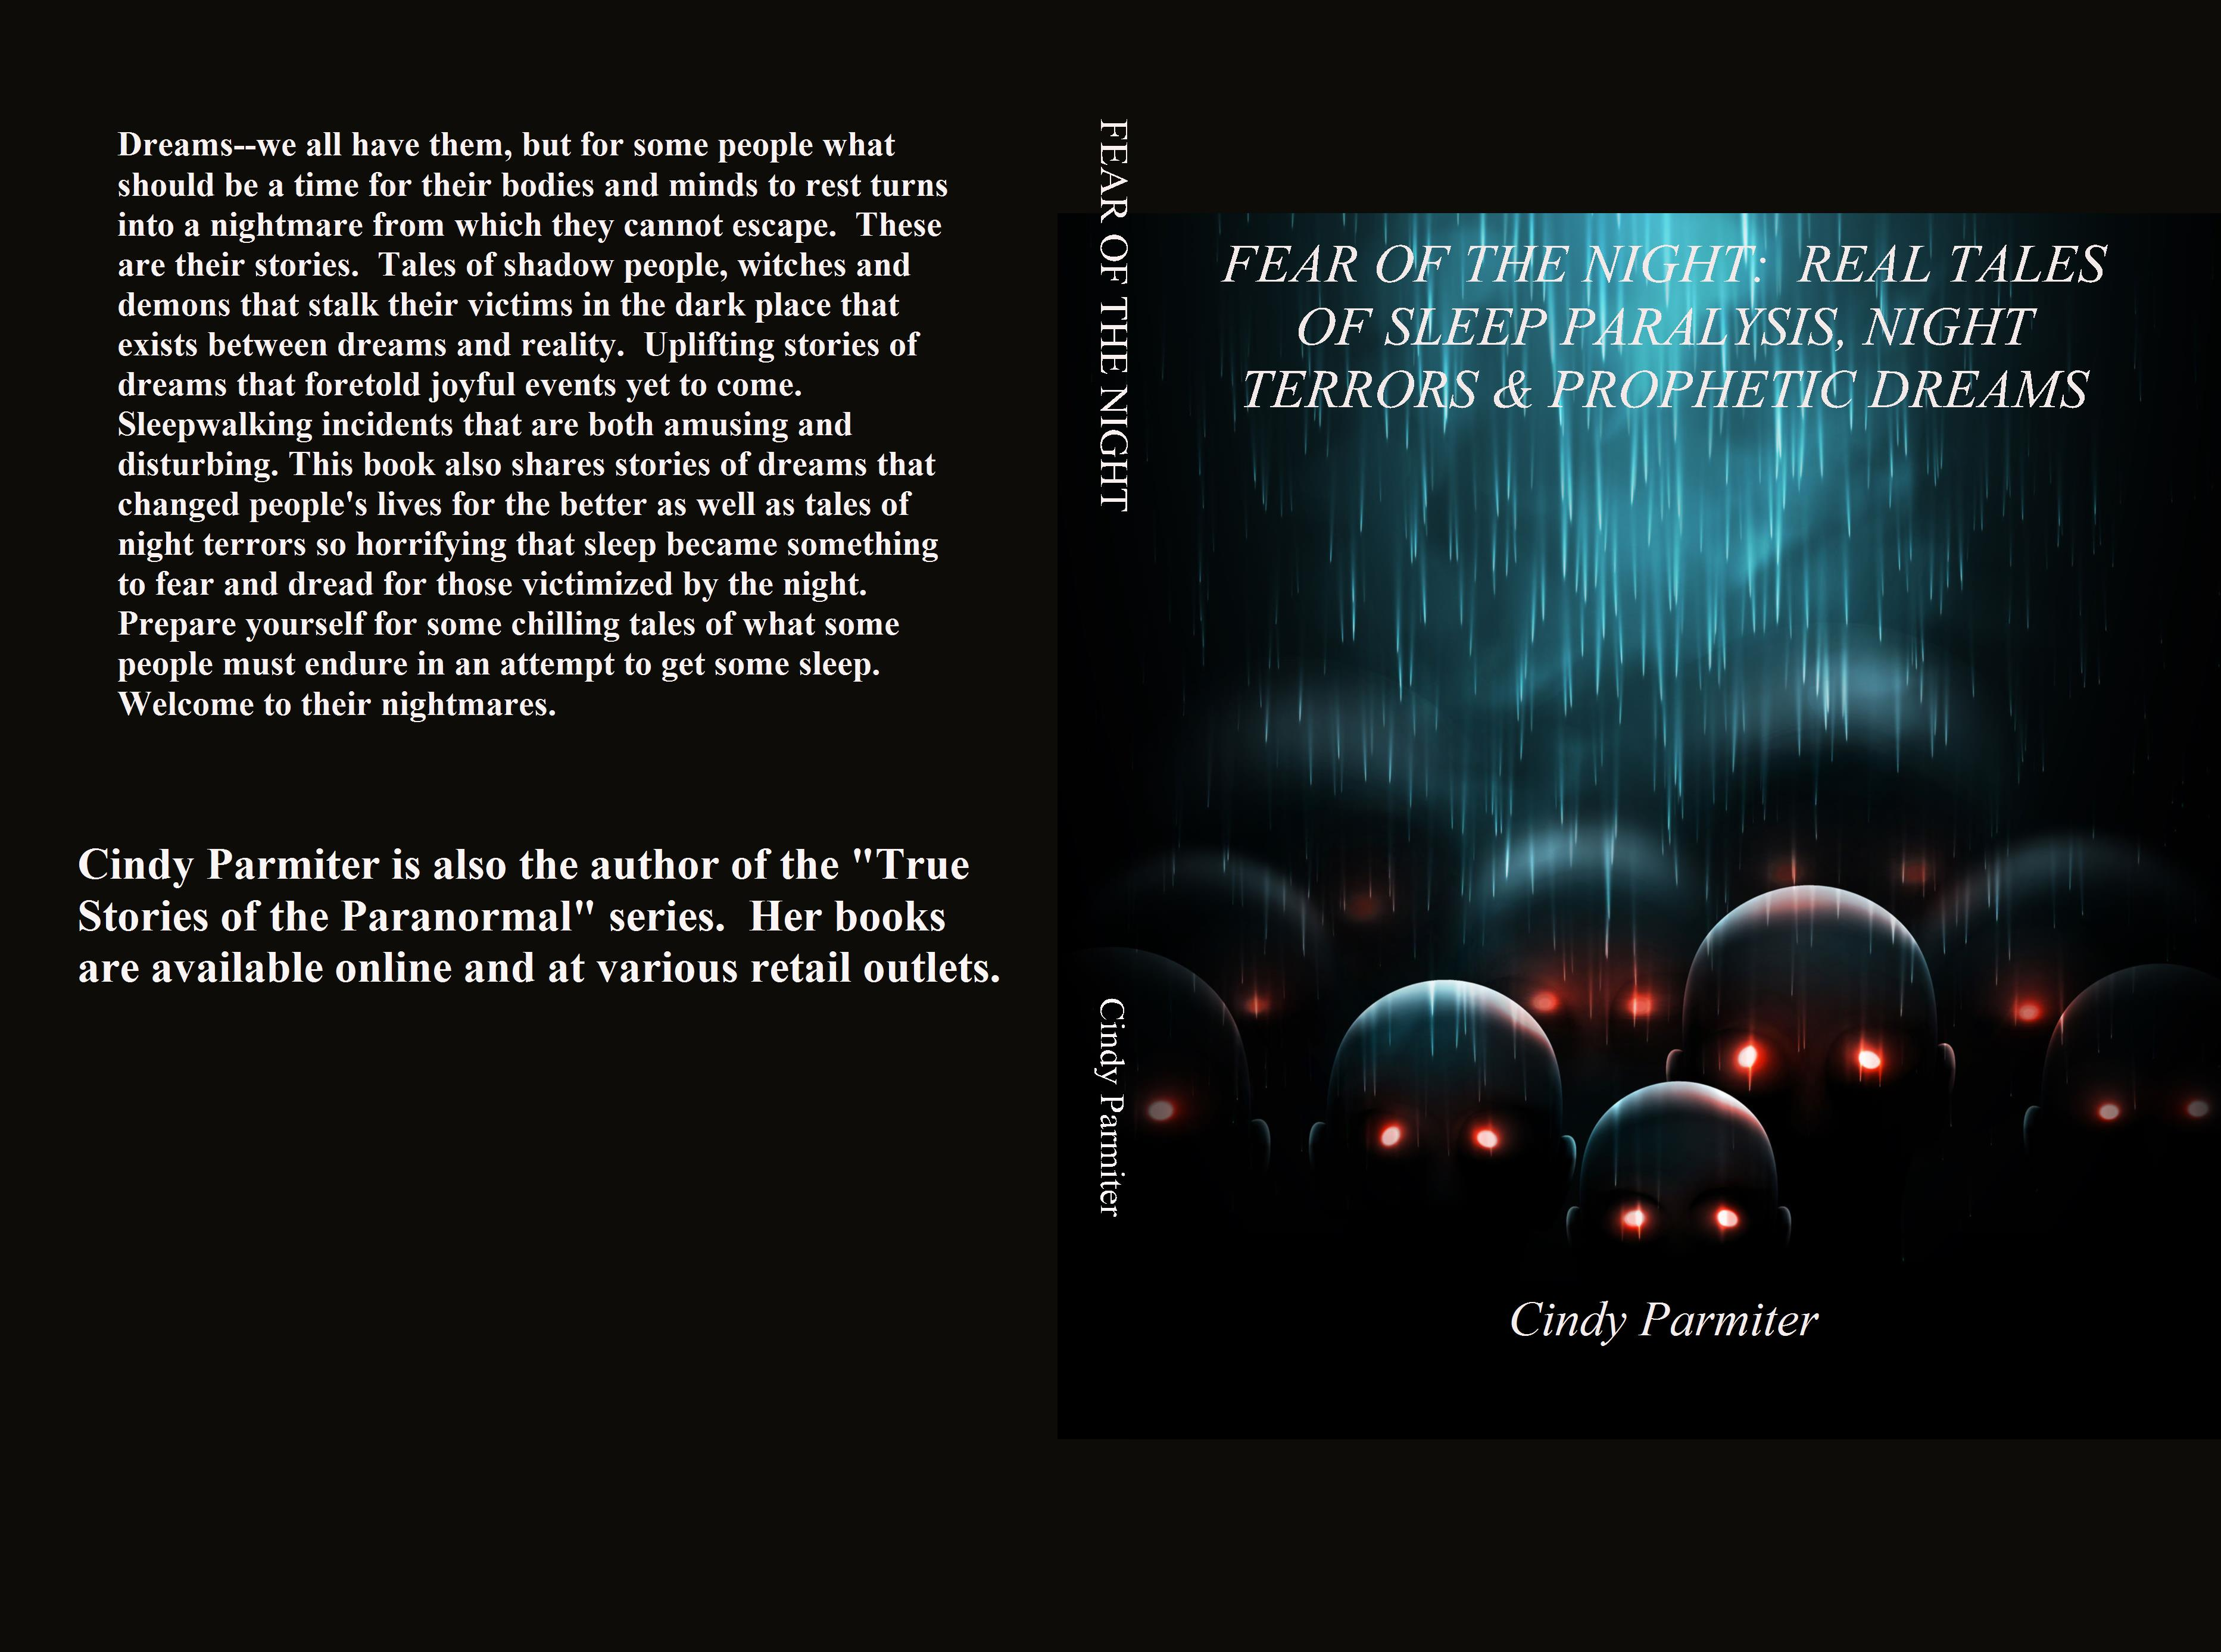 FEAR OF THE NIGHT: REAL TALES OF SLEEP PARALYSIS, NIGHT TERRORS & PROPHETIC DREAMS cover image